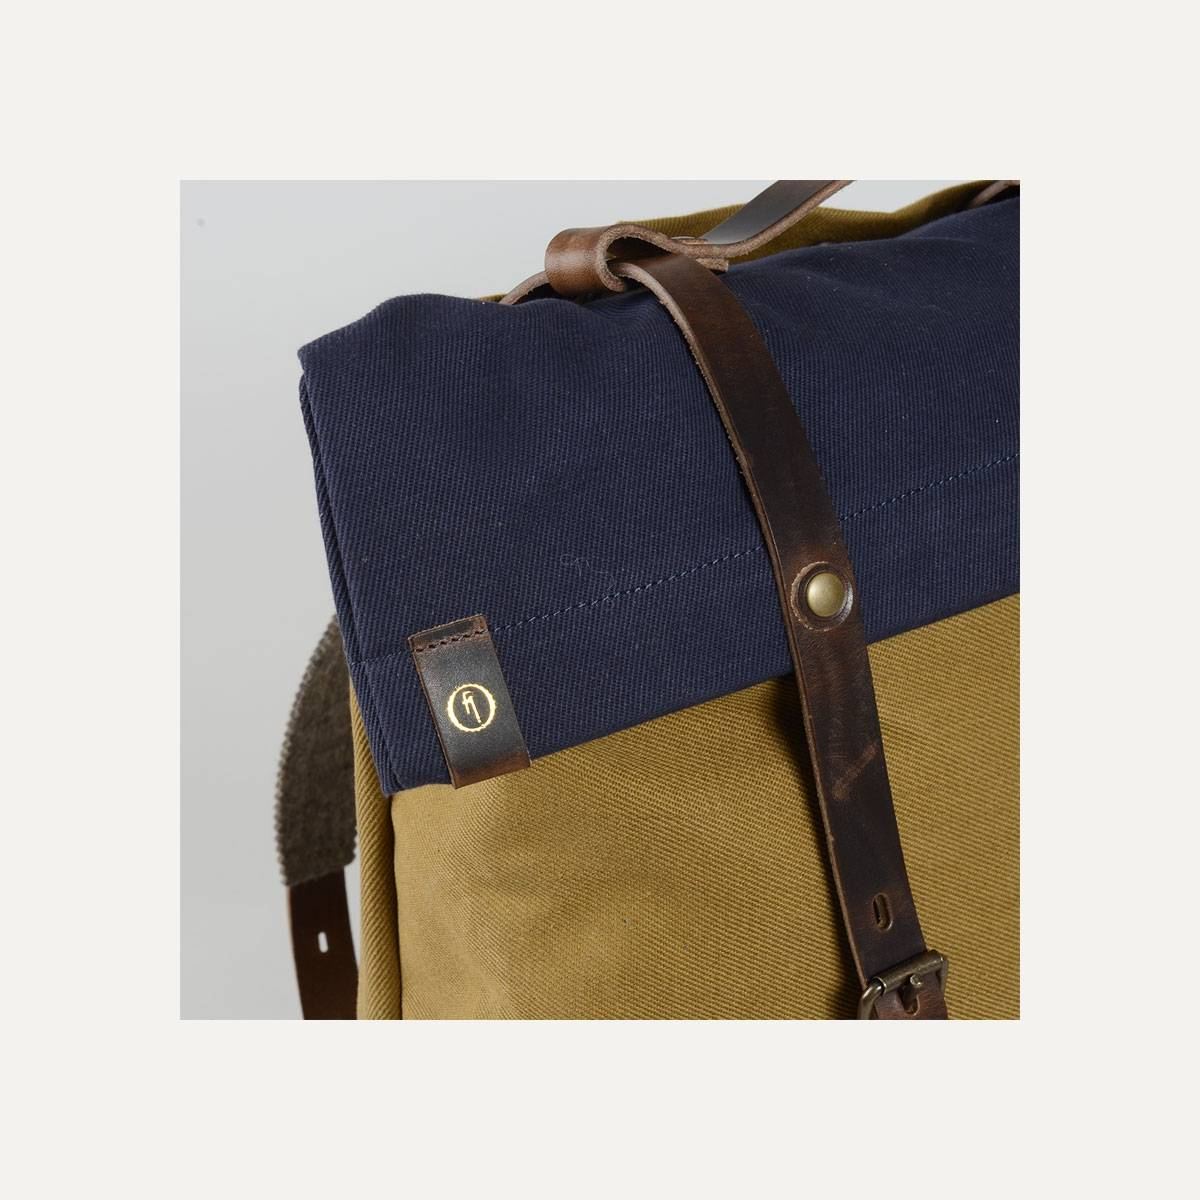 Blitz Motorcycles Scout Backpack - Navy/Camel (image n°10)